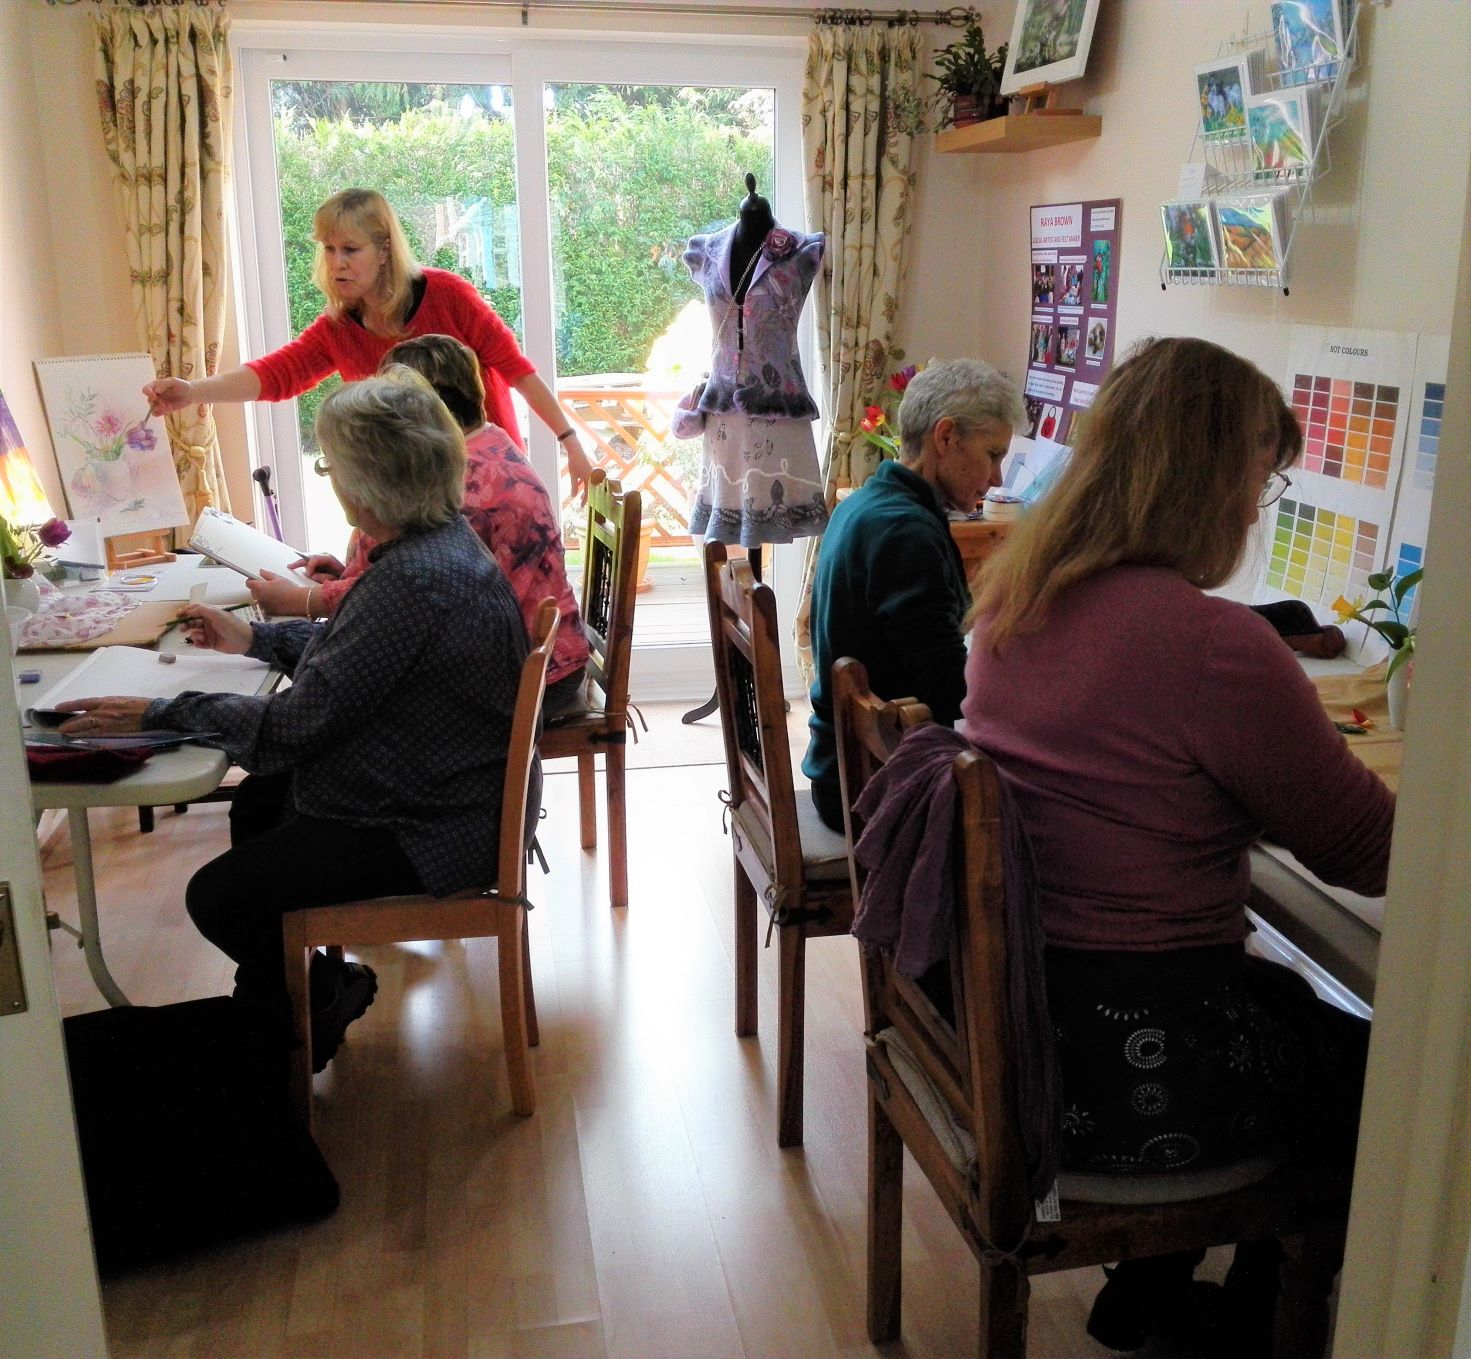 Our new site Art Classes in Midlands has just been launched.